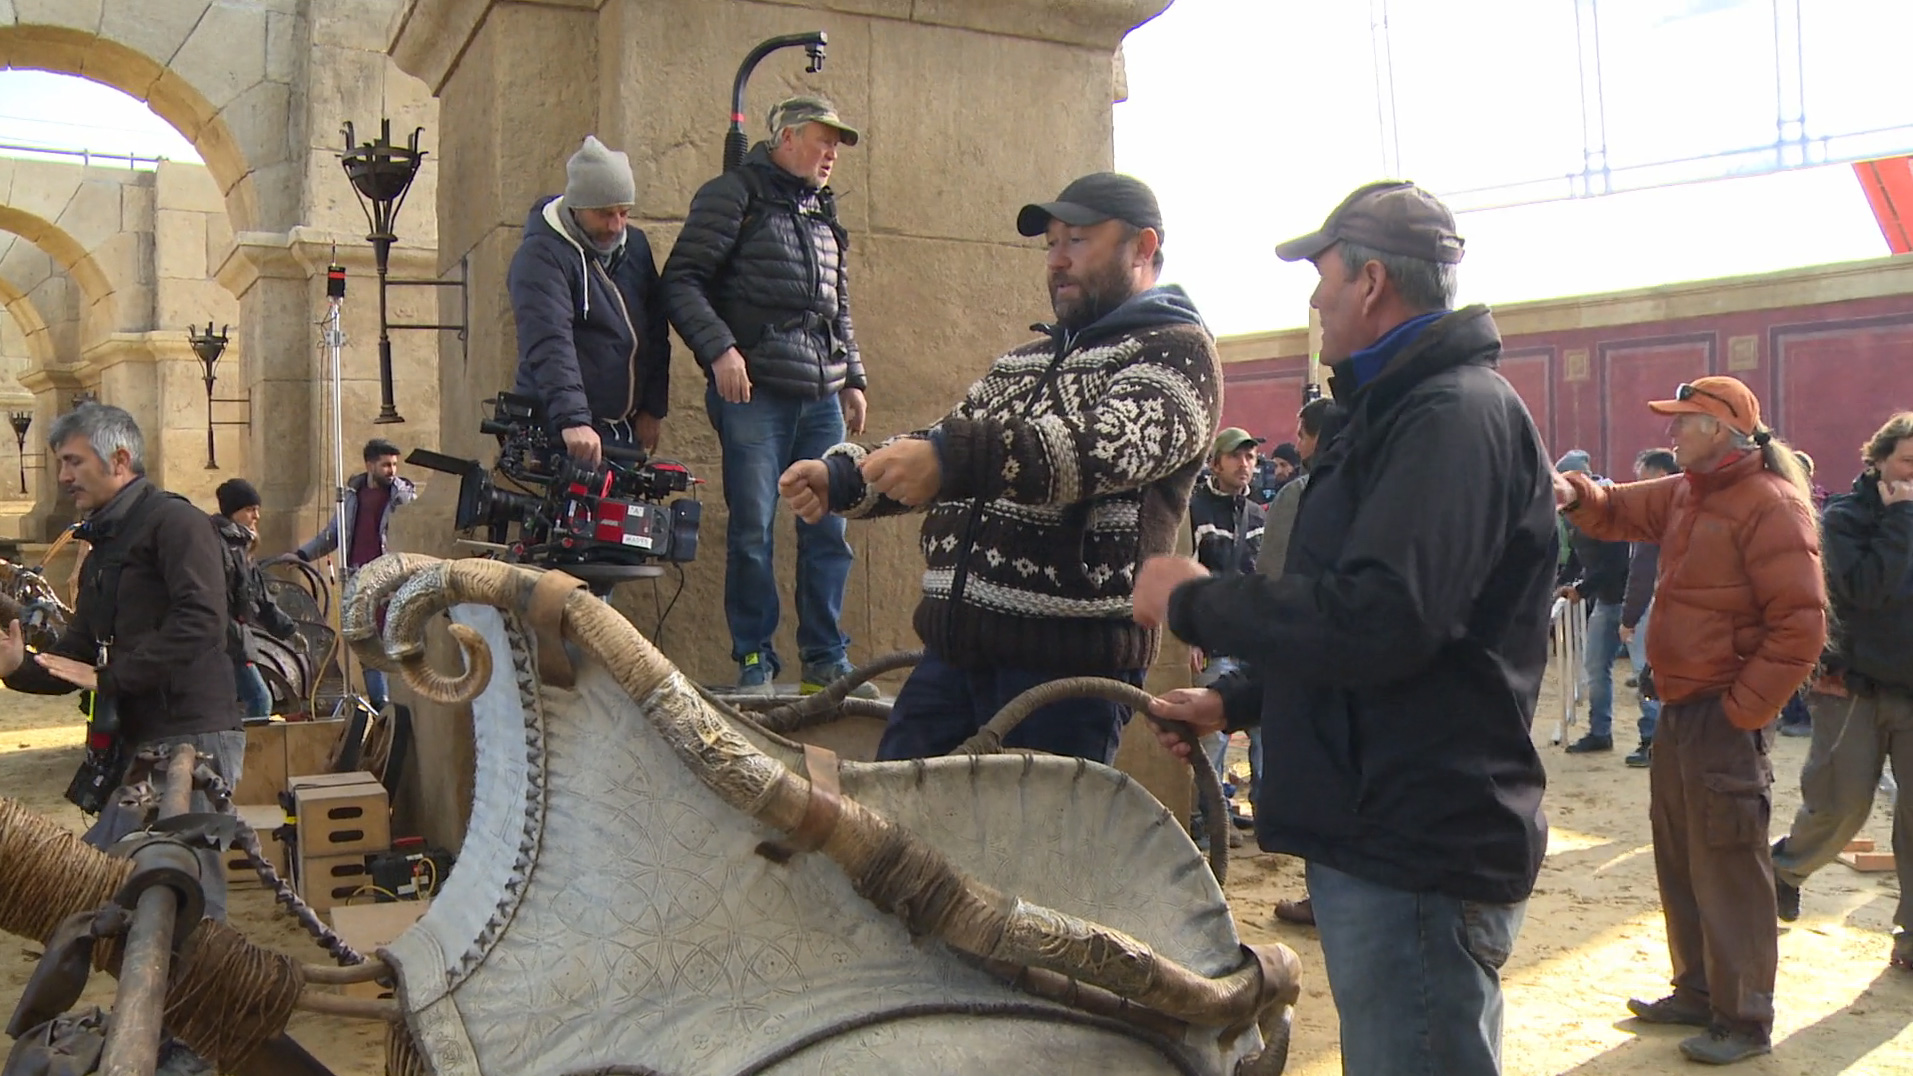 Director Timur Bekmambetov chatting with the camera crew before shooting the famous chariot race.